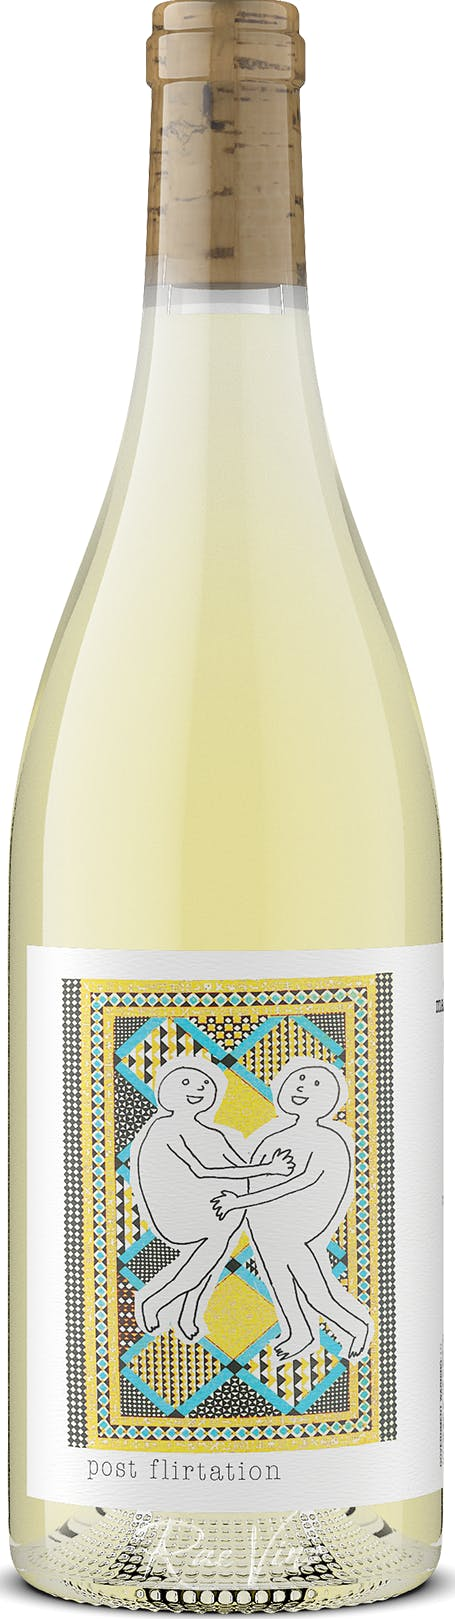 Martha Stoumen Post Flirtation White 2019 750ml